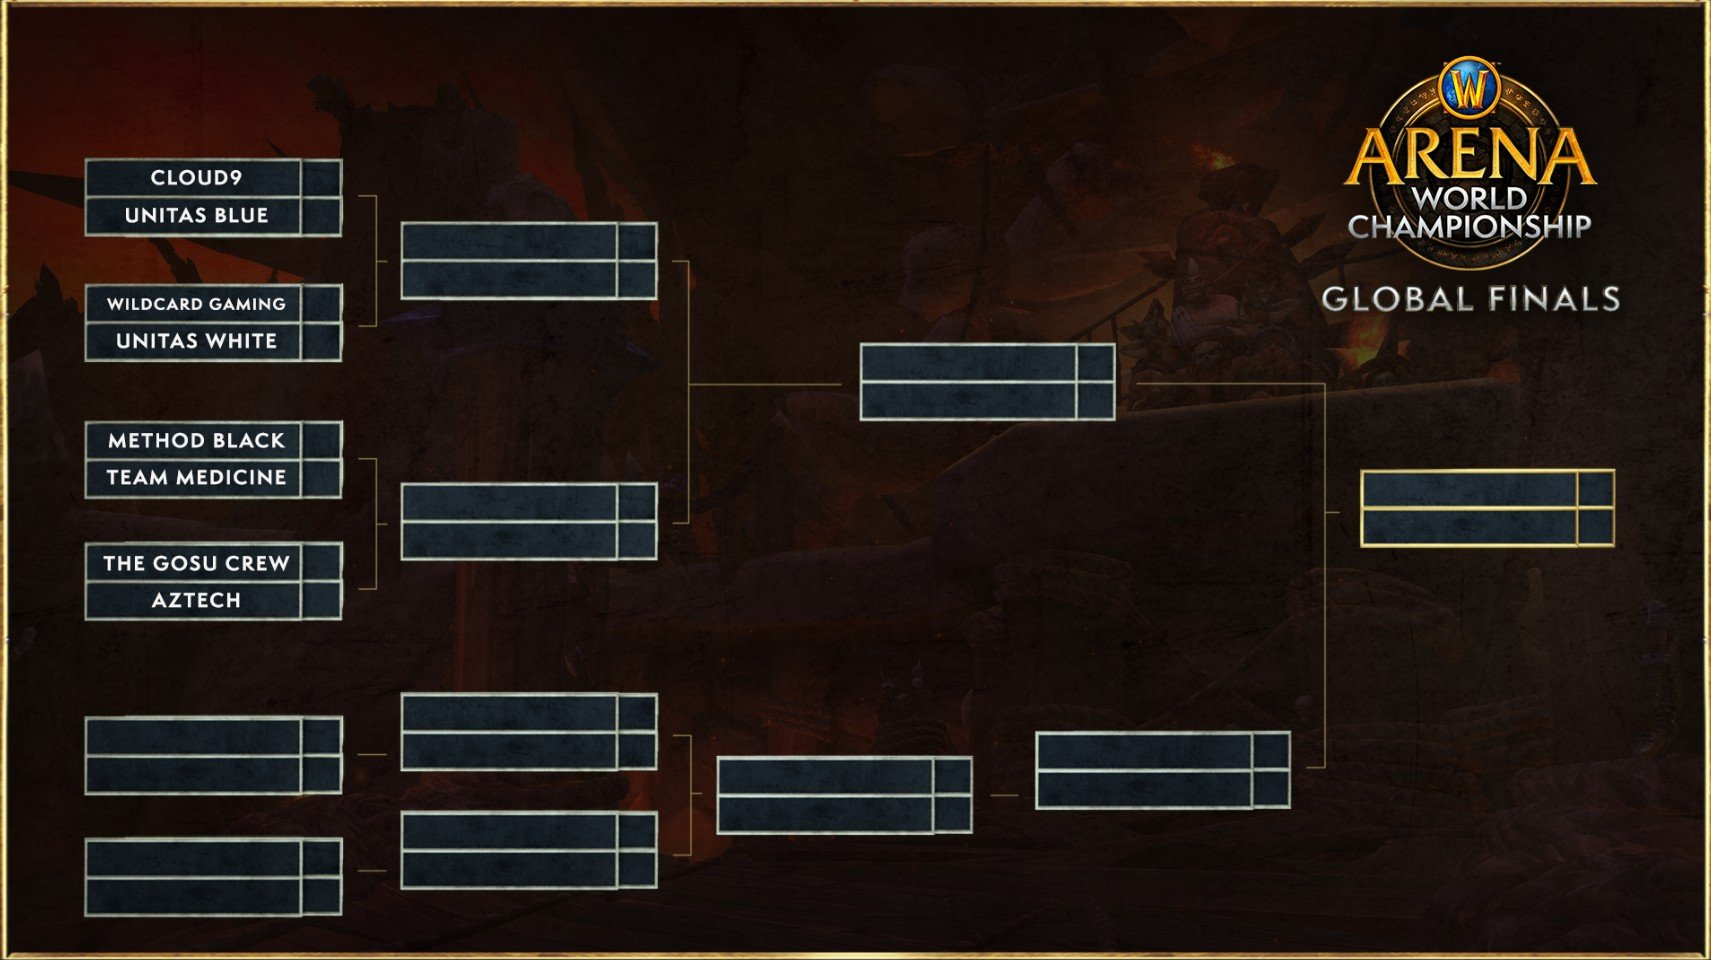 2019 Arena World Championship bracket